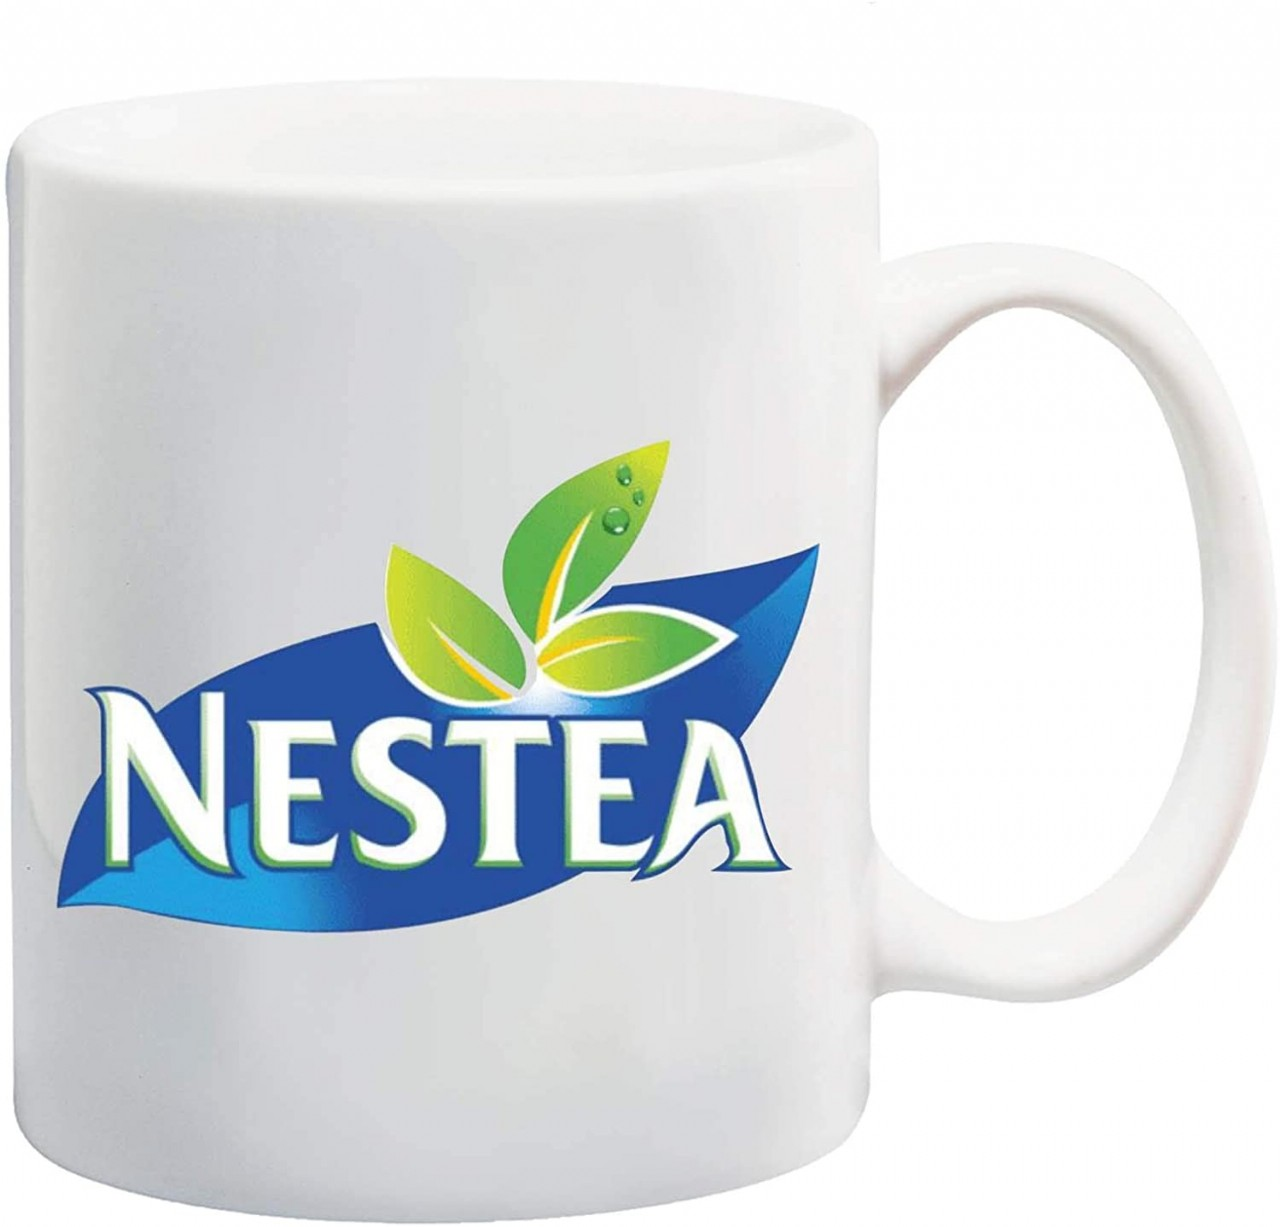 Manglam Mart Nestea White Tea Coffee Mug Ceramic Coffee Tea Cup